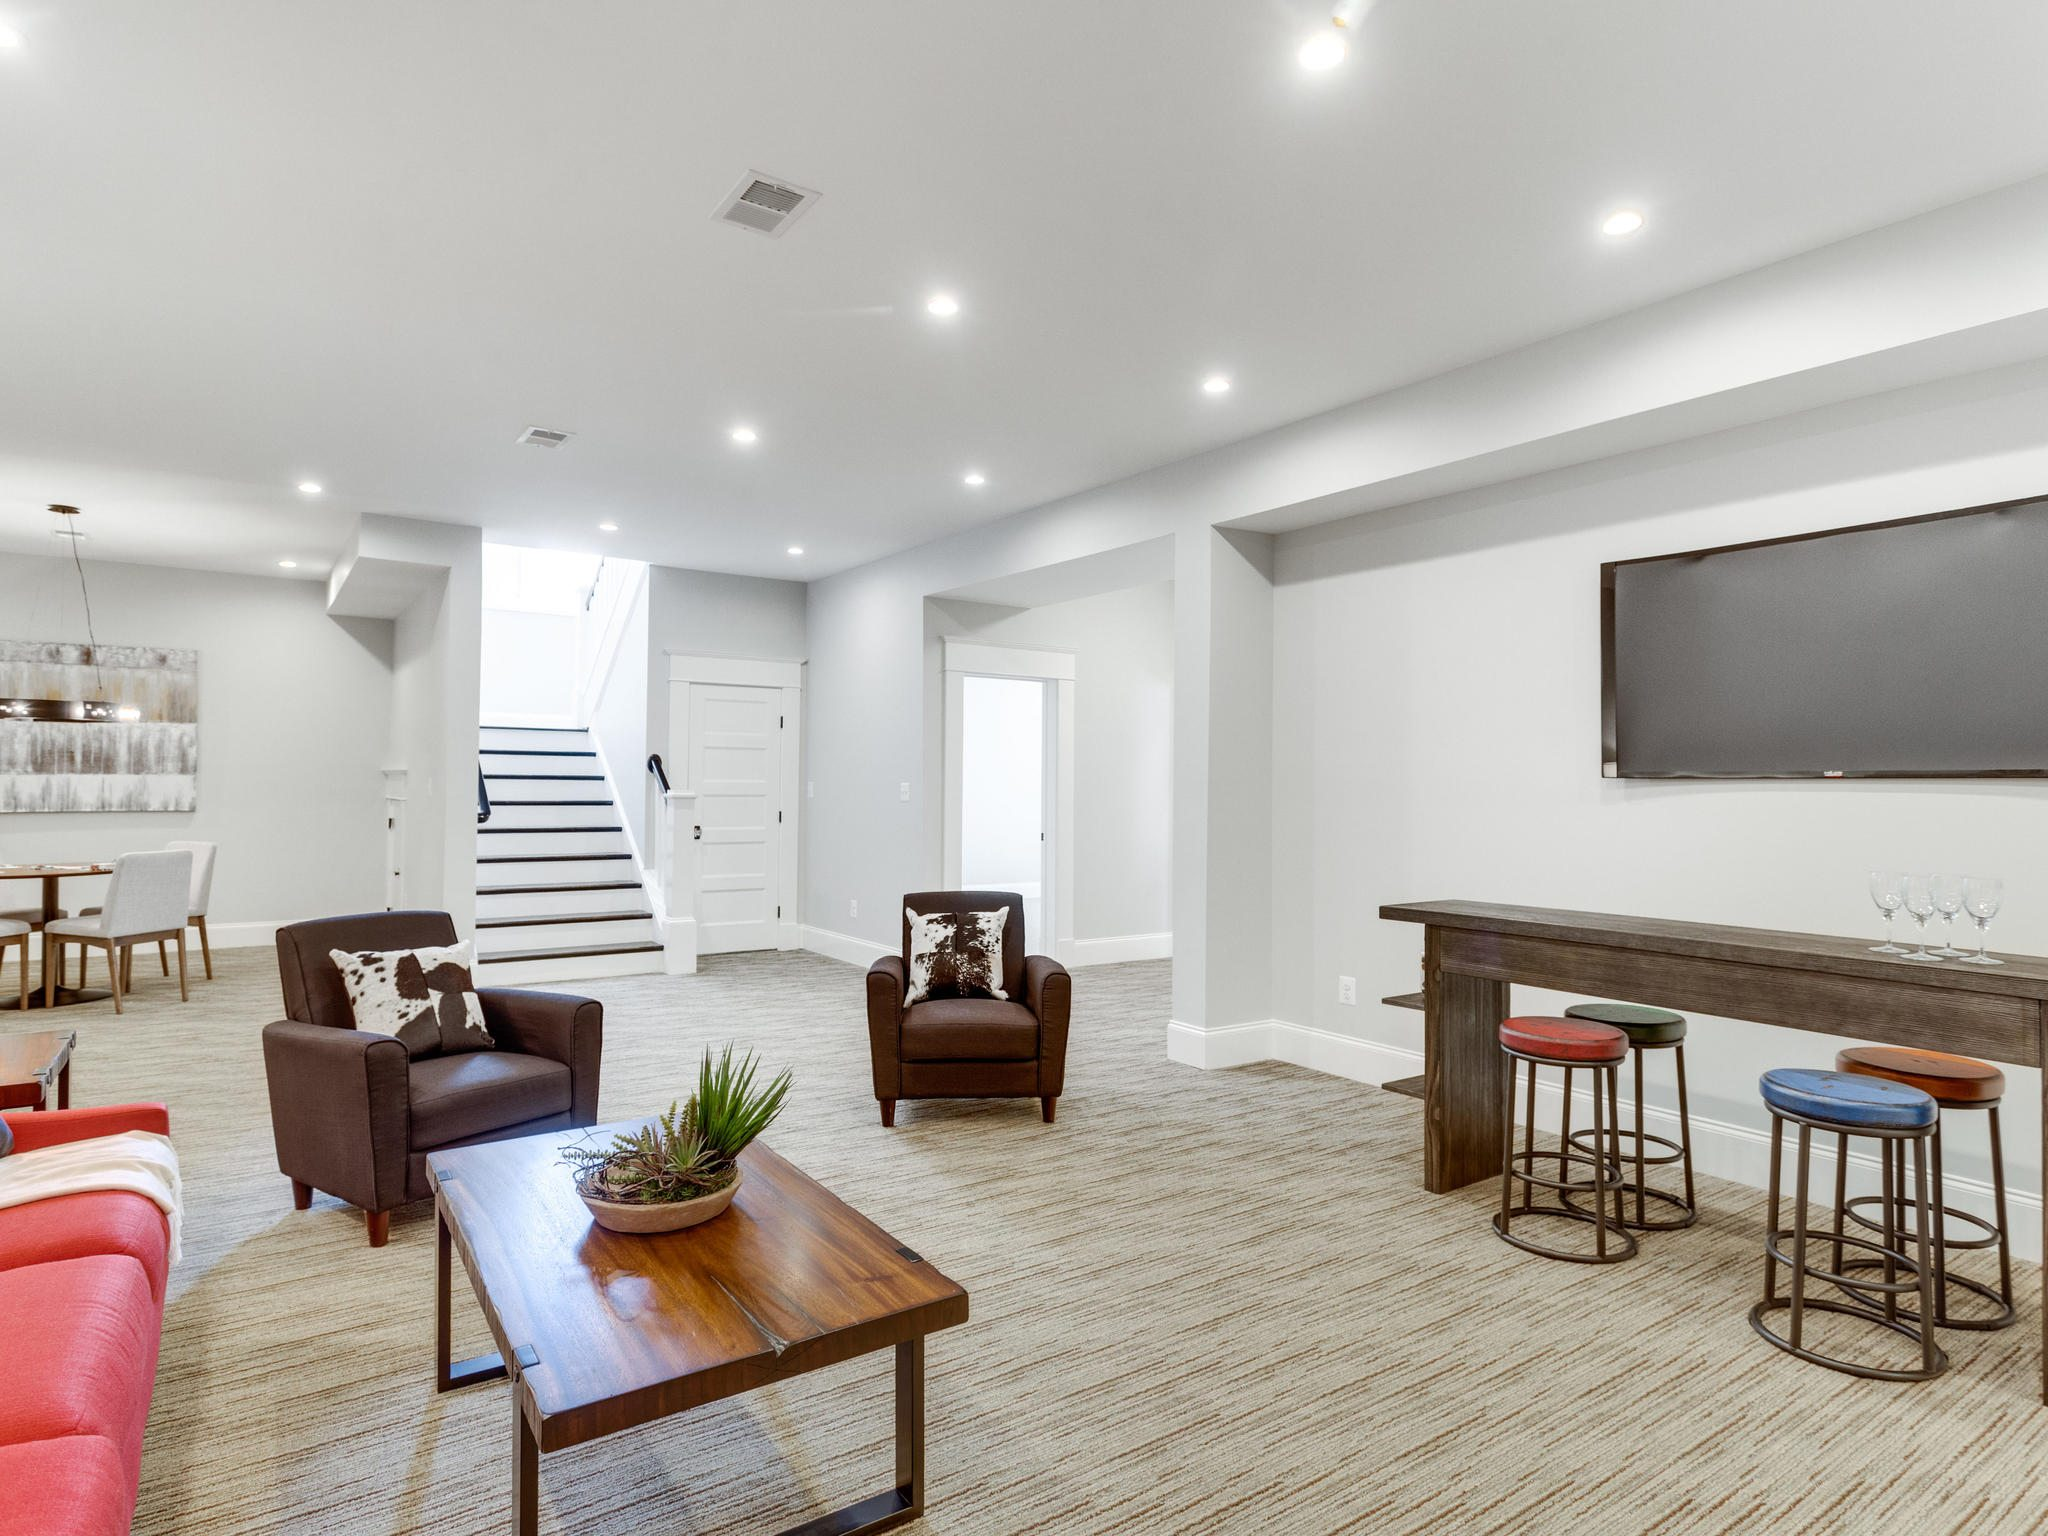 Basement with space for games, television viewing, and storage. Custom Home by Custom Builder, North Arlington, VA 22207